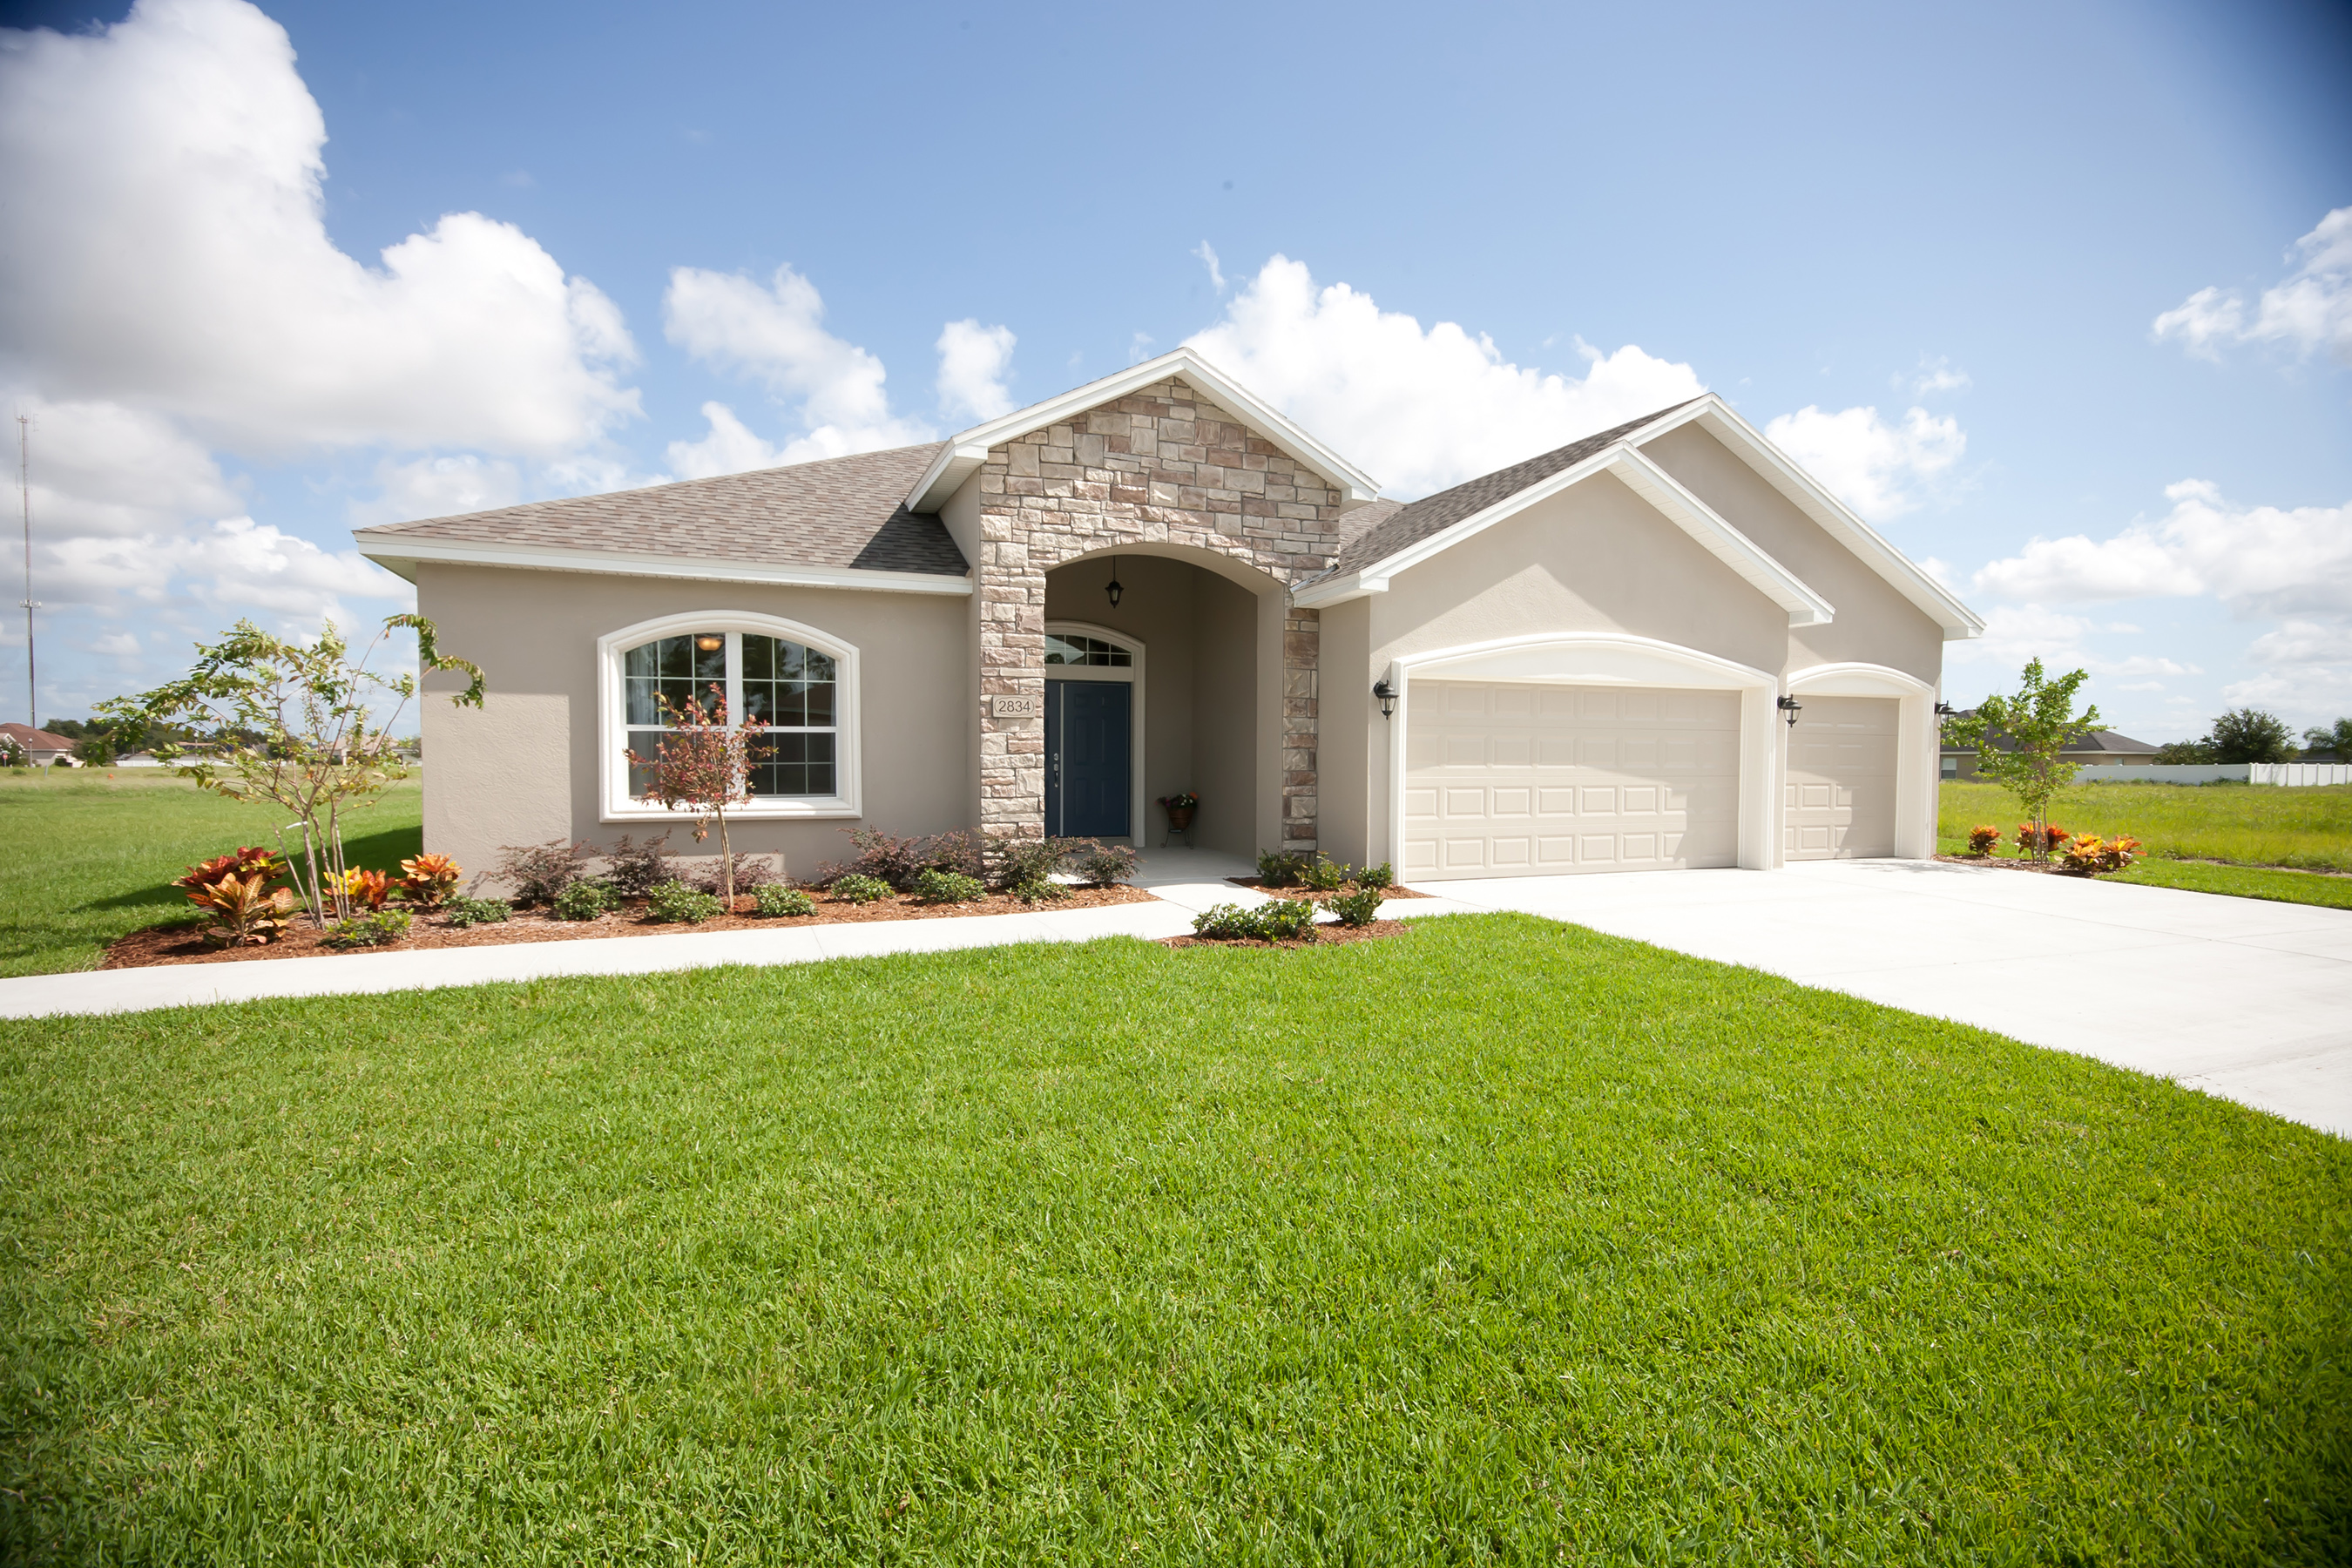 Family-owned home builder, Highland Homes, has built over 8,000 homes in over 200 communities throughout Central Florida.